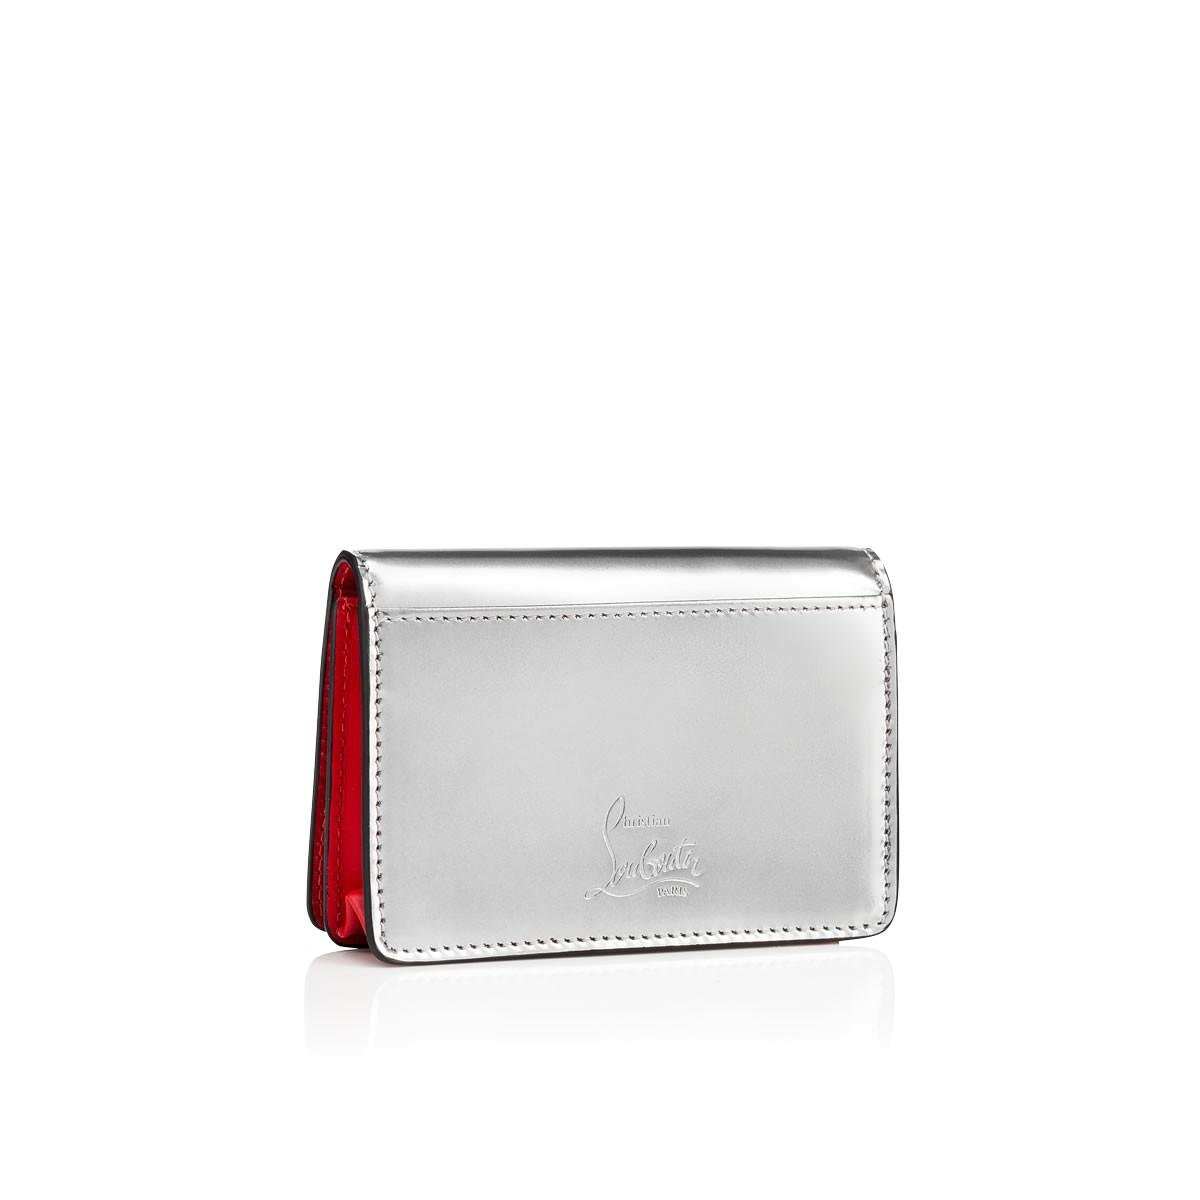 Lyst - Christian Louboutin Loubeka Business Card Case in Metallic